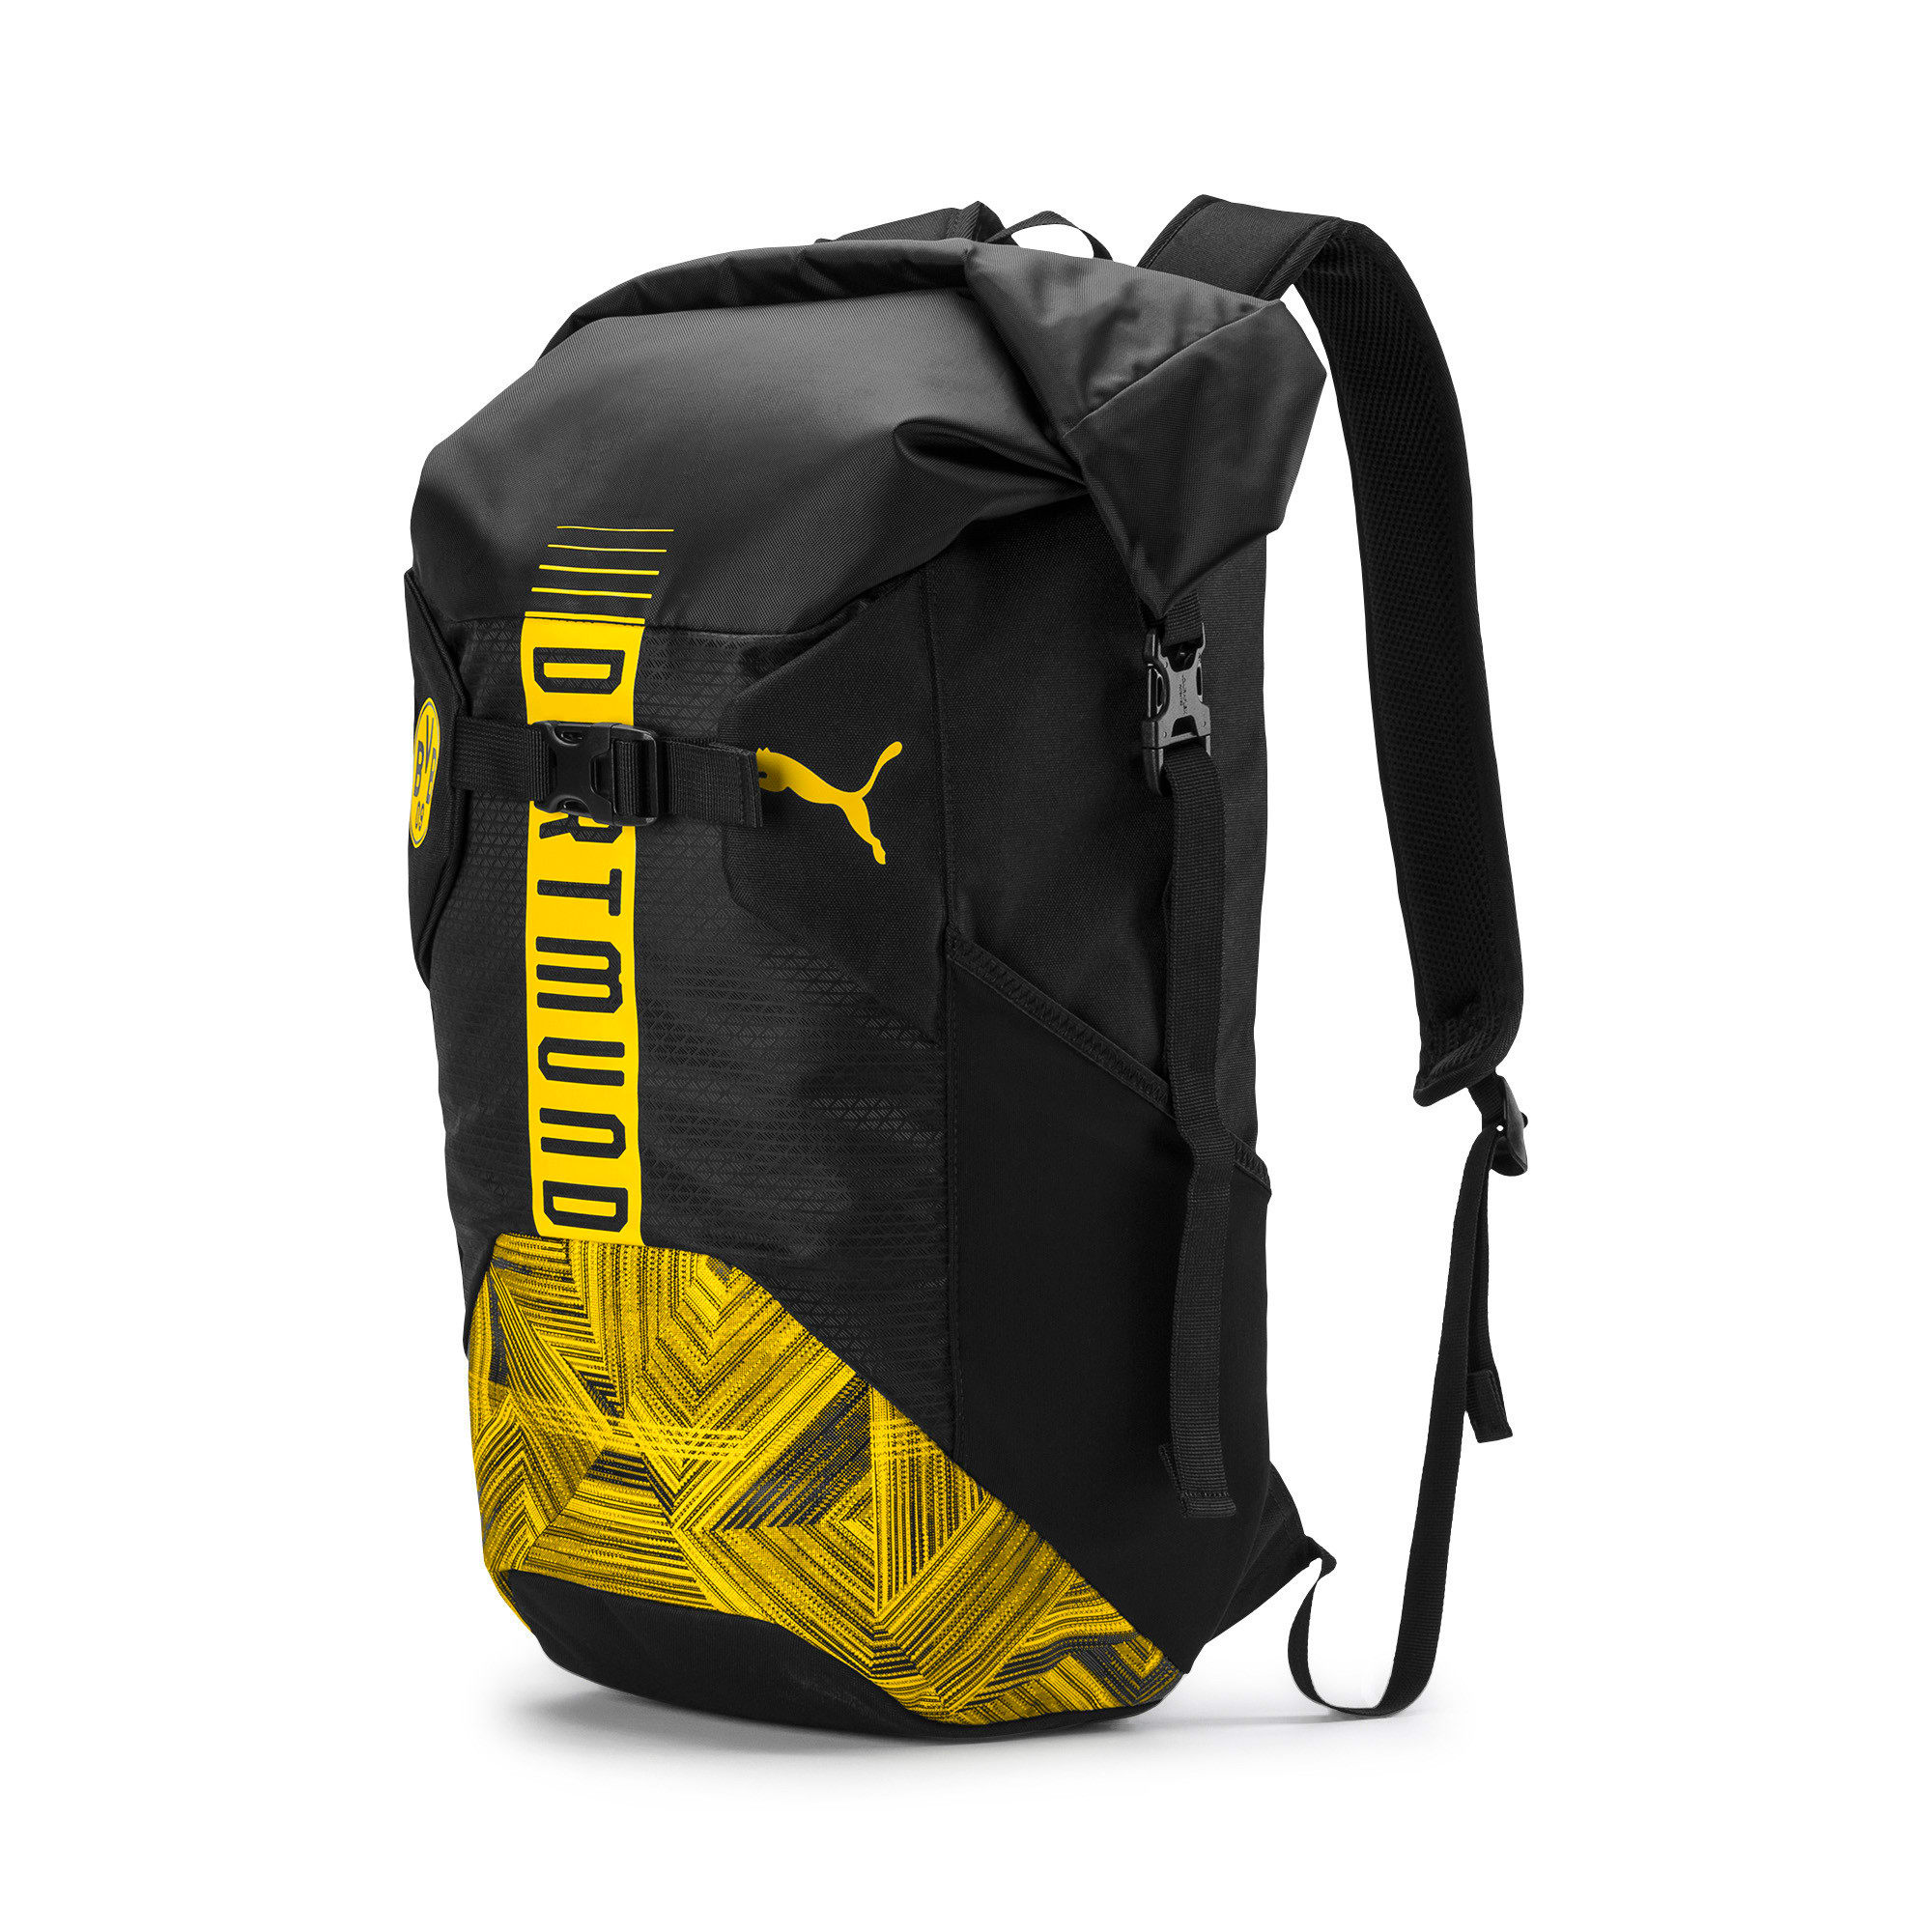 BVB Football Culture Rucksack, Puma Black-Cyber Yellow, large